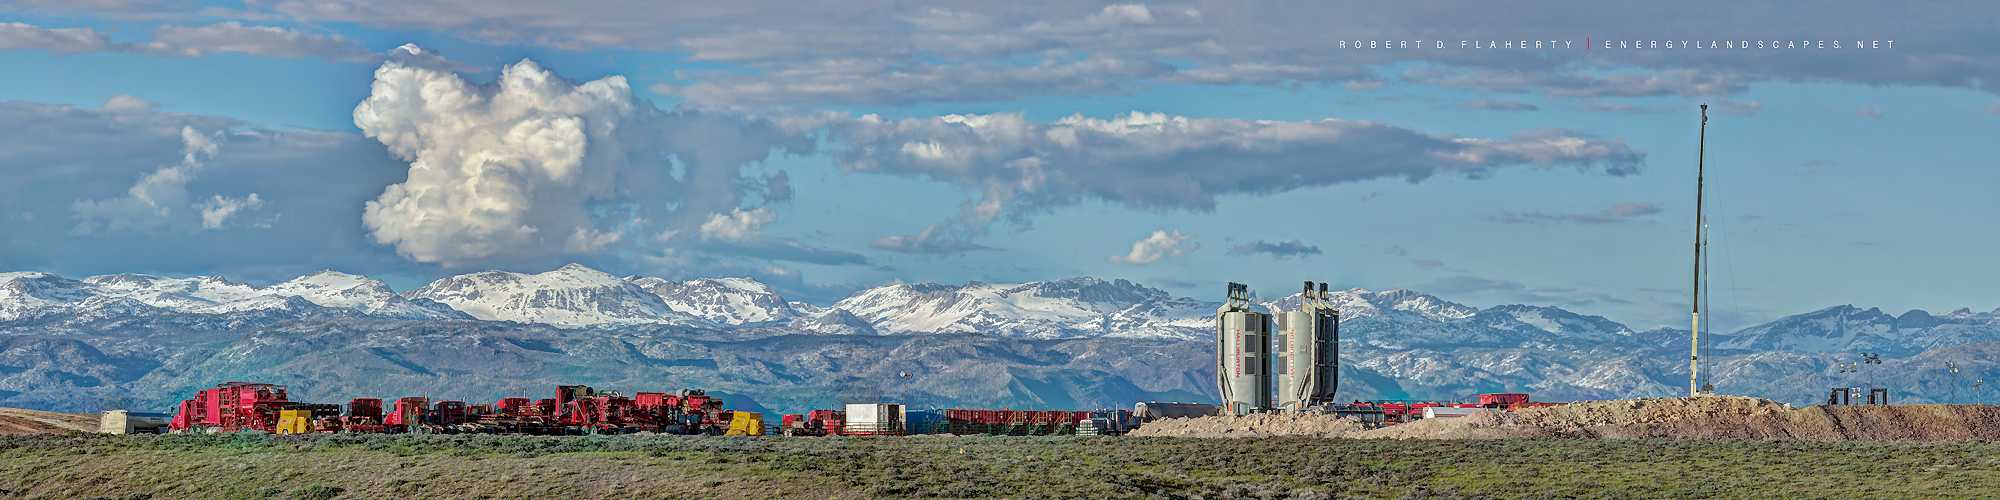 Frac, Boulder Wyoming, mountains, mural, panorama, high resolution, photo